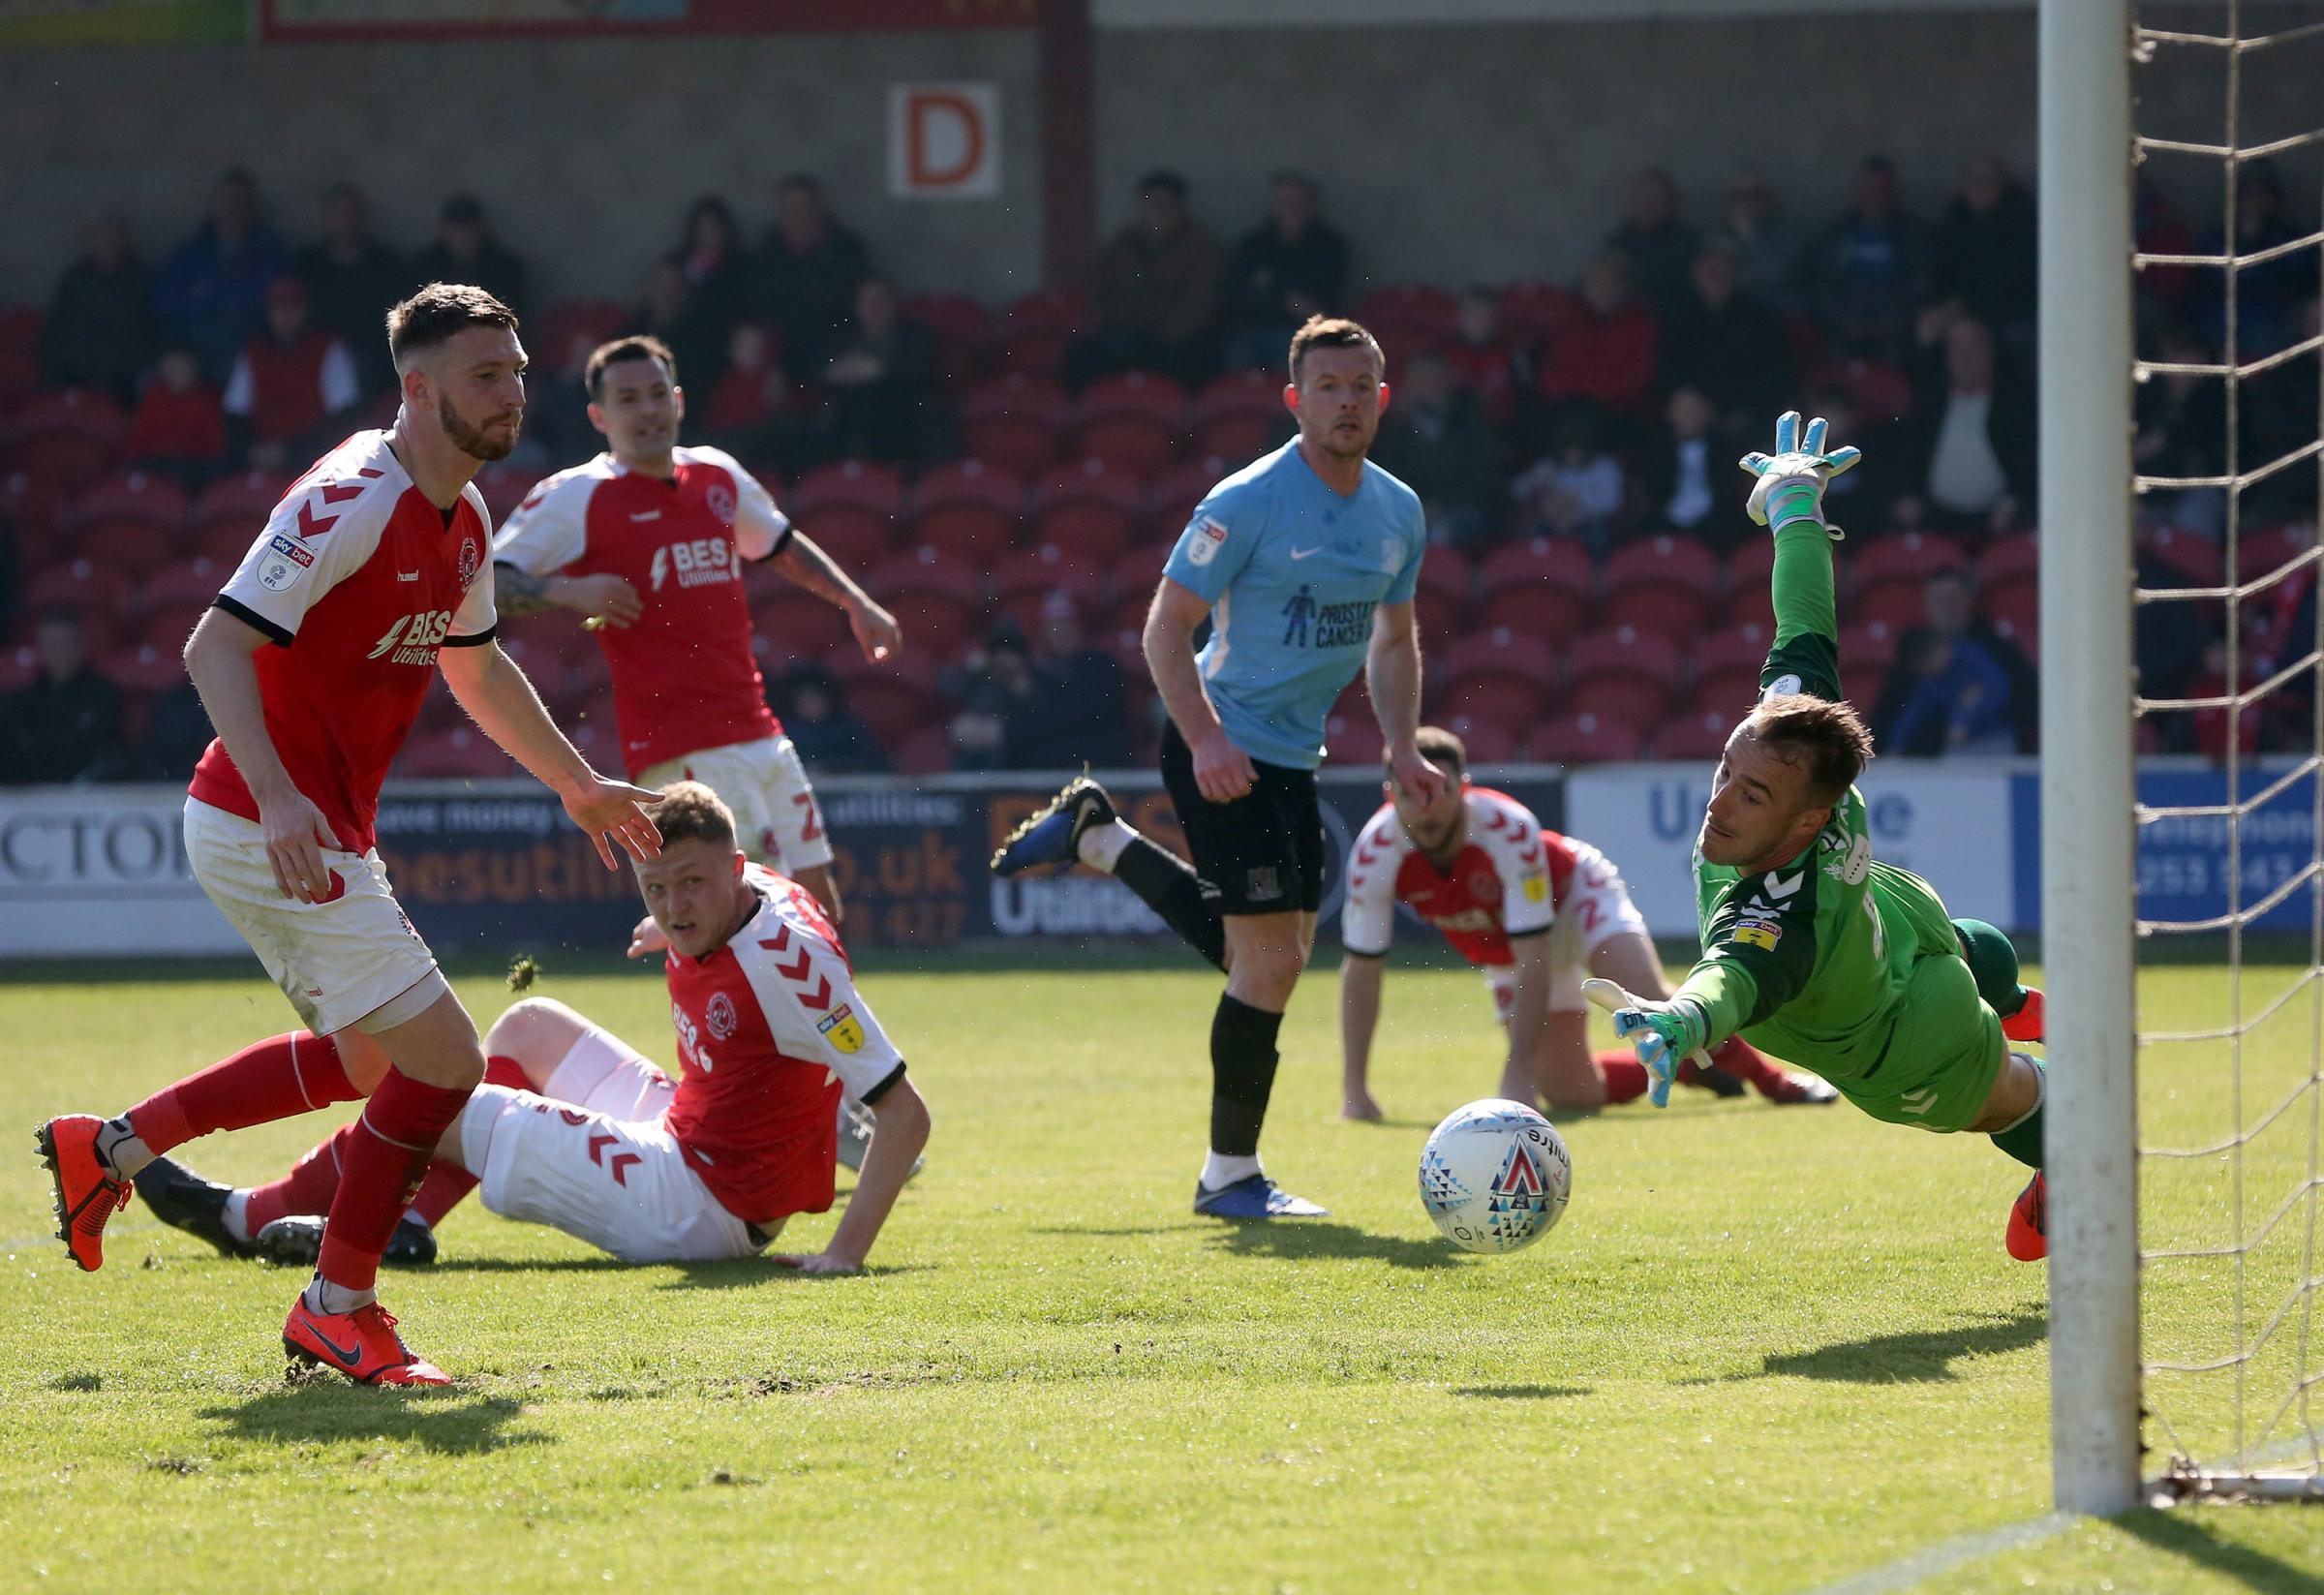 On target - Harry Bunn scored for Blues at Fleetwood Town on Saturday